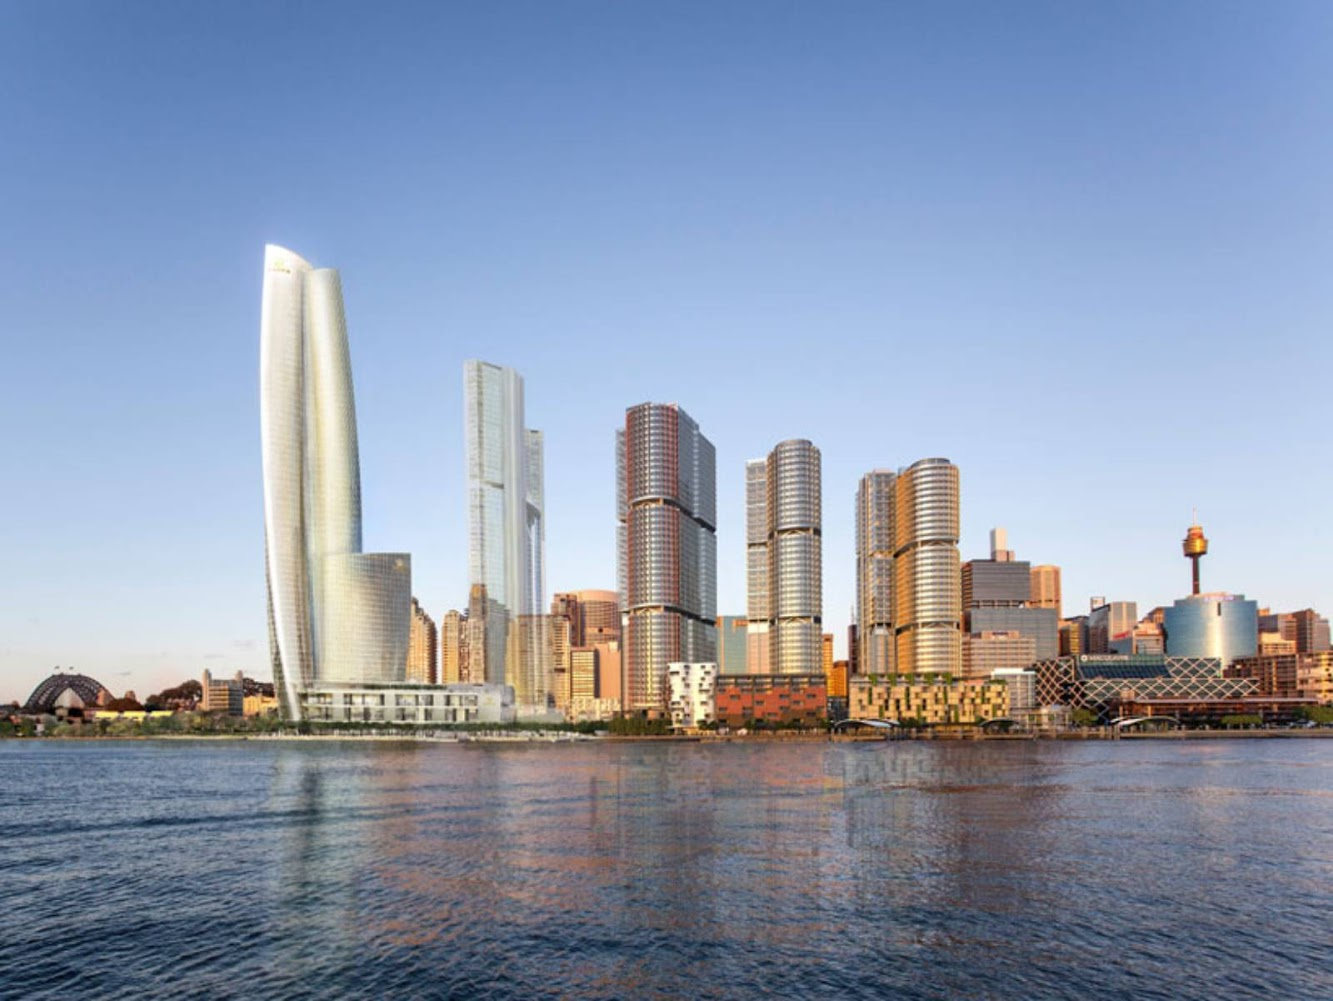 Sydney Nuovo Galles del Sud, Australia: Crown Resorts Has Chosen Wilkinson Eyre